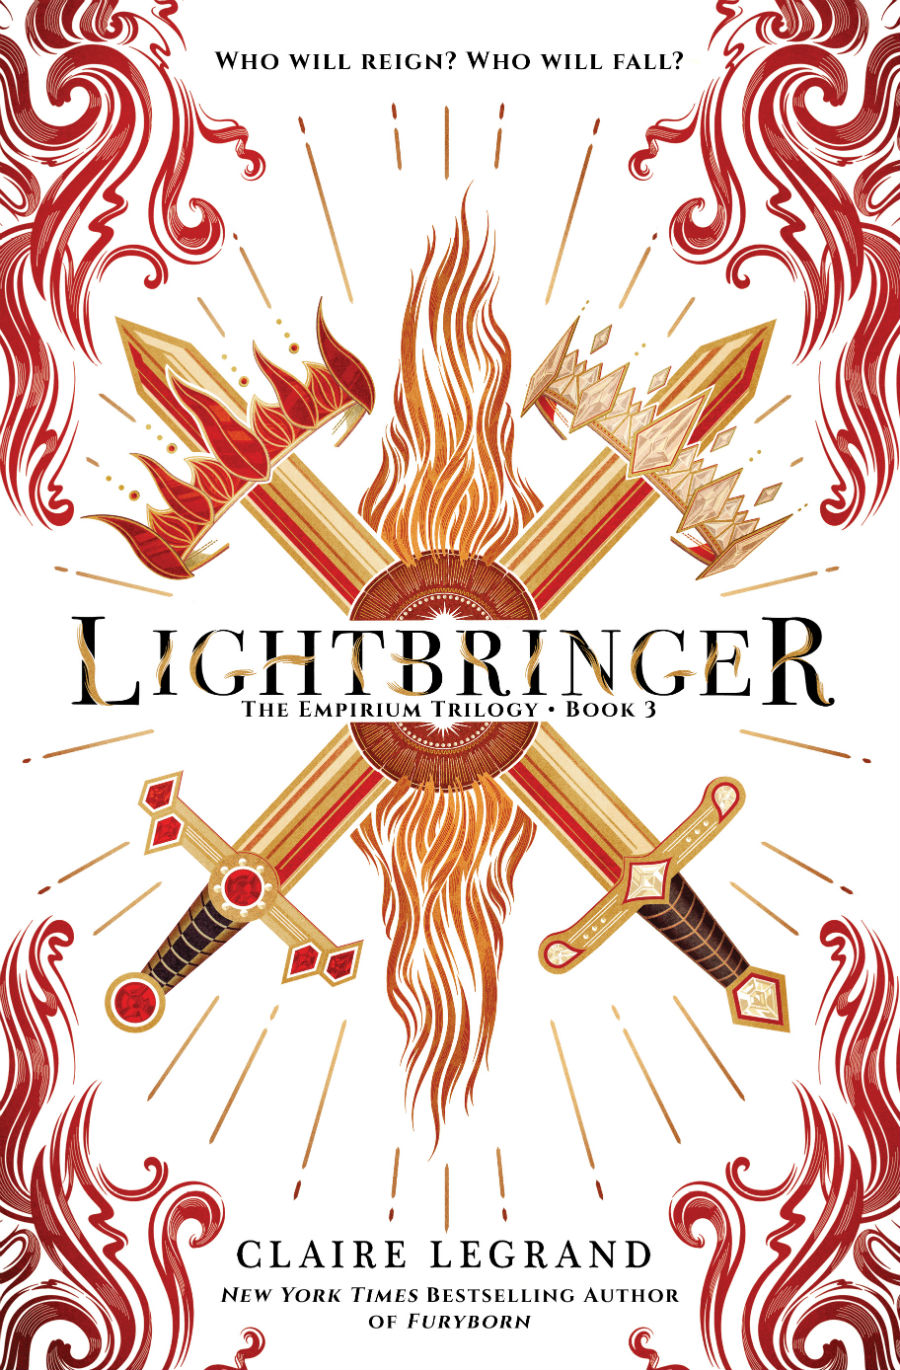 lightbringer cover reveal